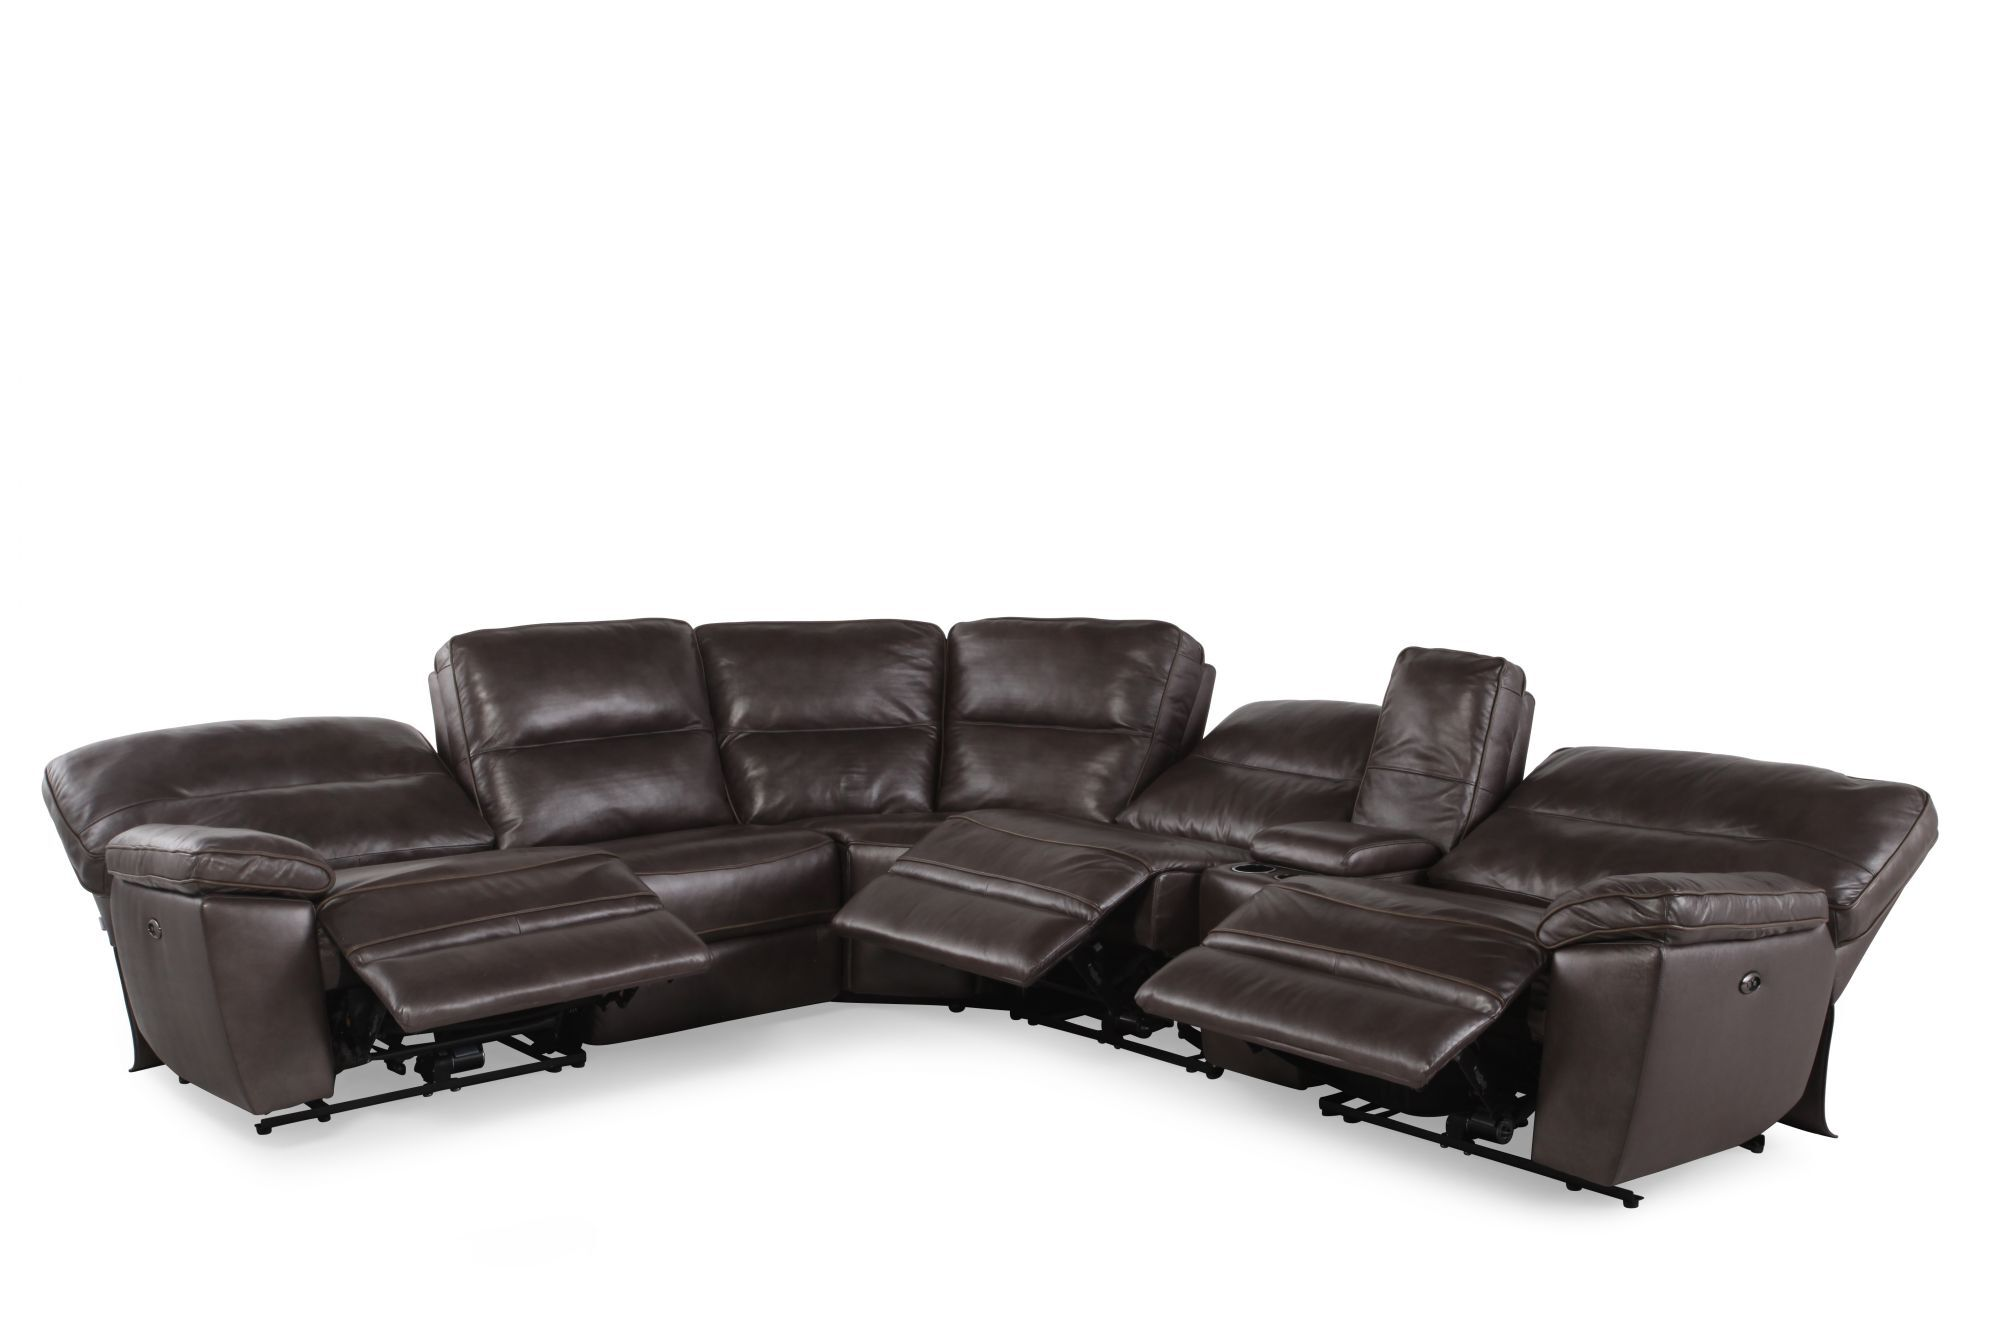 Superior Six Piece Contemporary Leather Reclining Sectional In Dark Gray